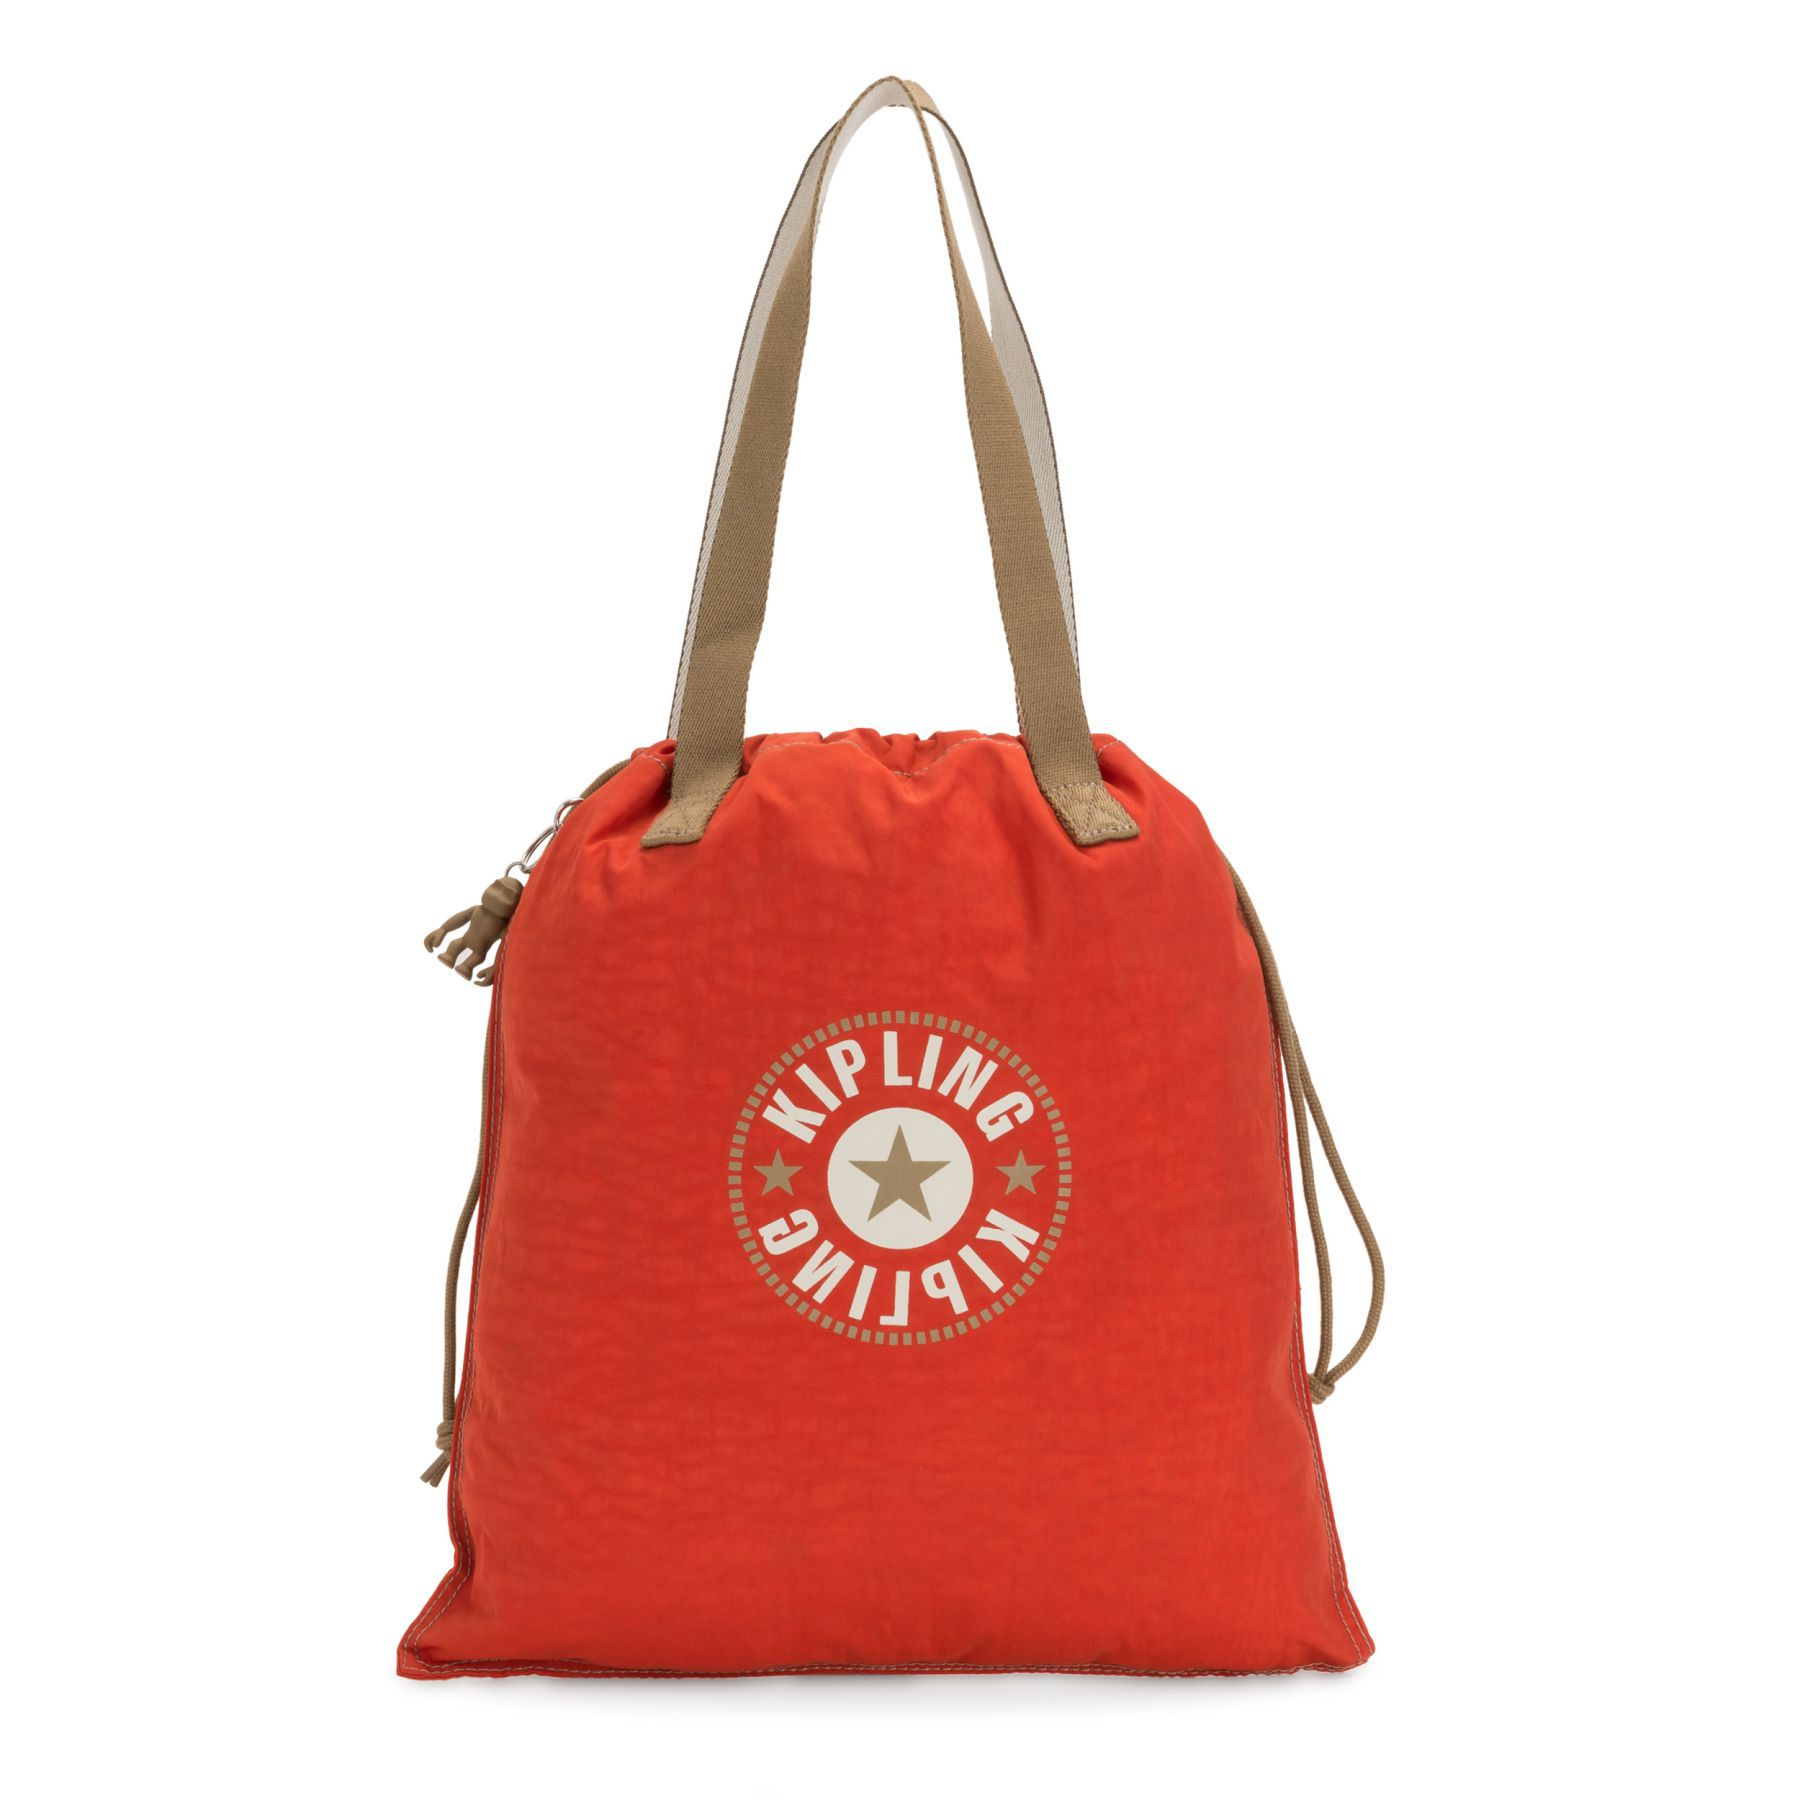 Bolsa Ombro Kipling New Hiphurray Funky Orange